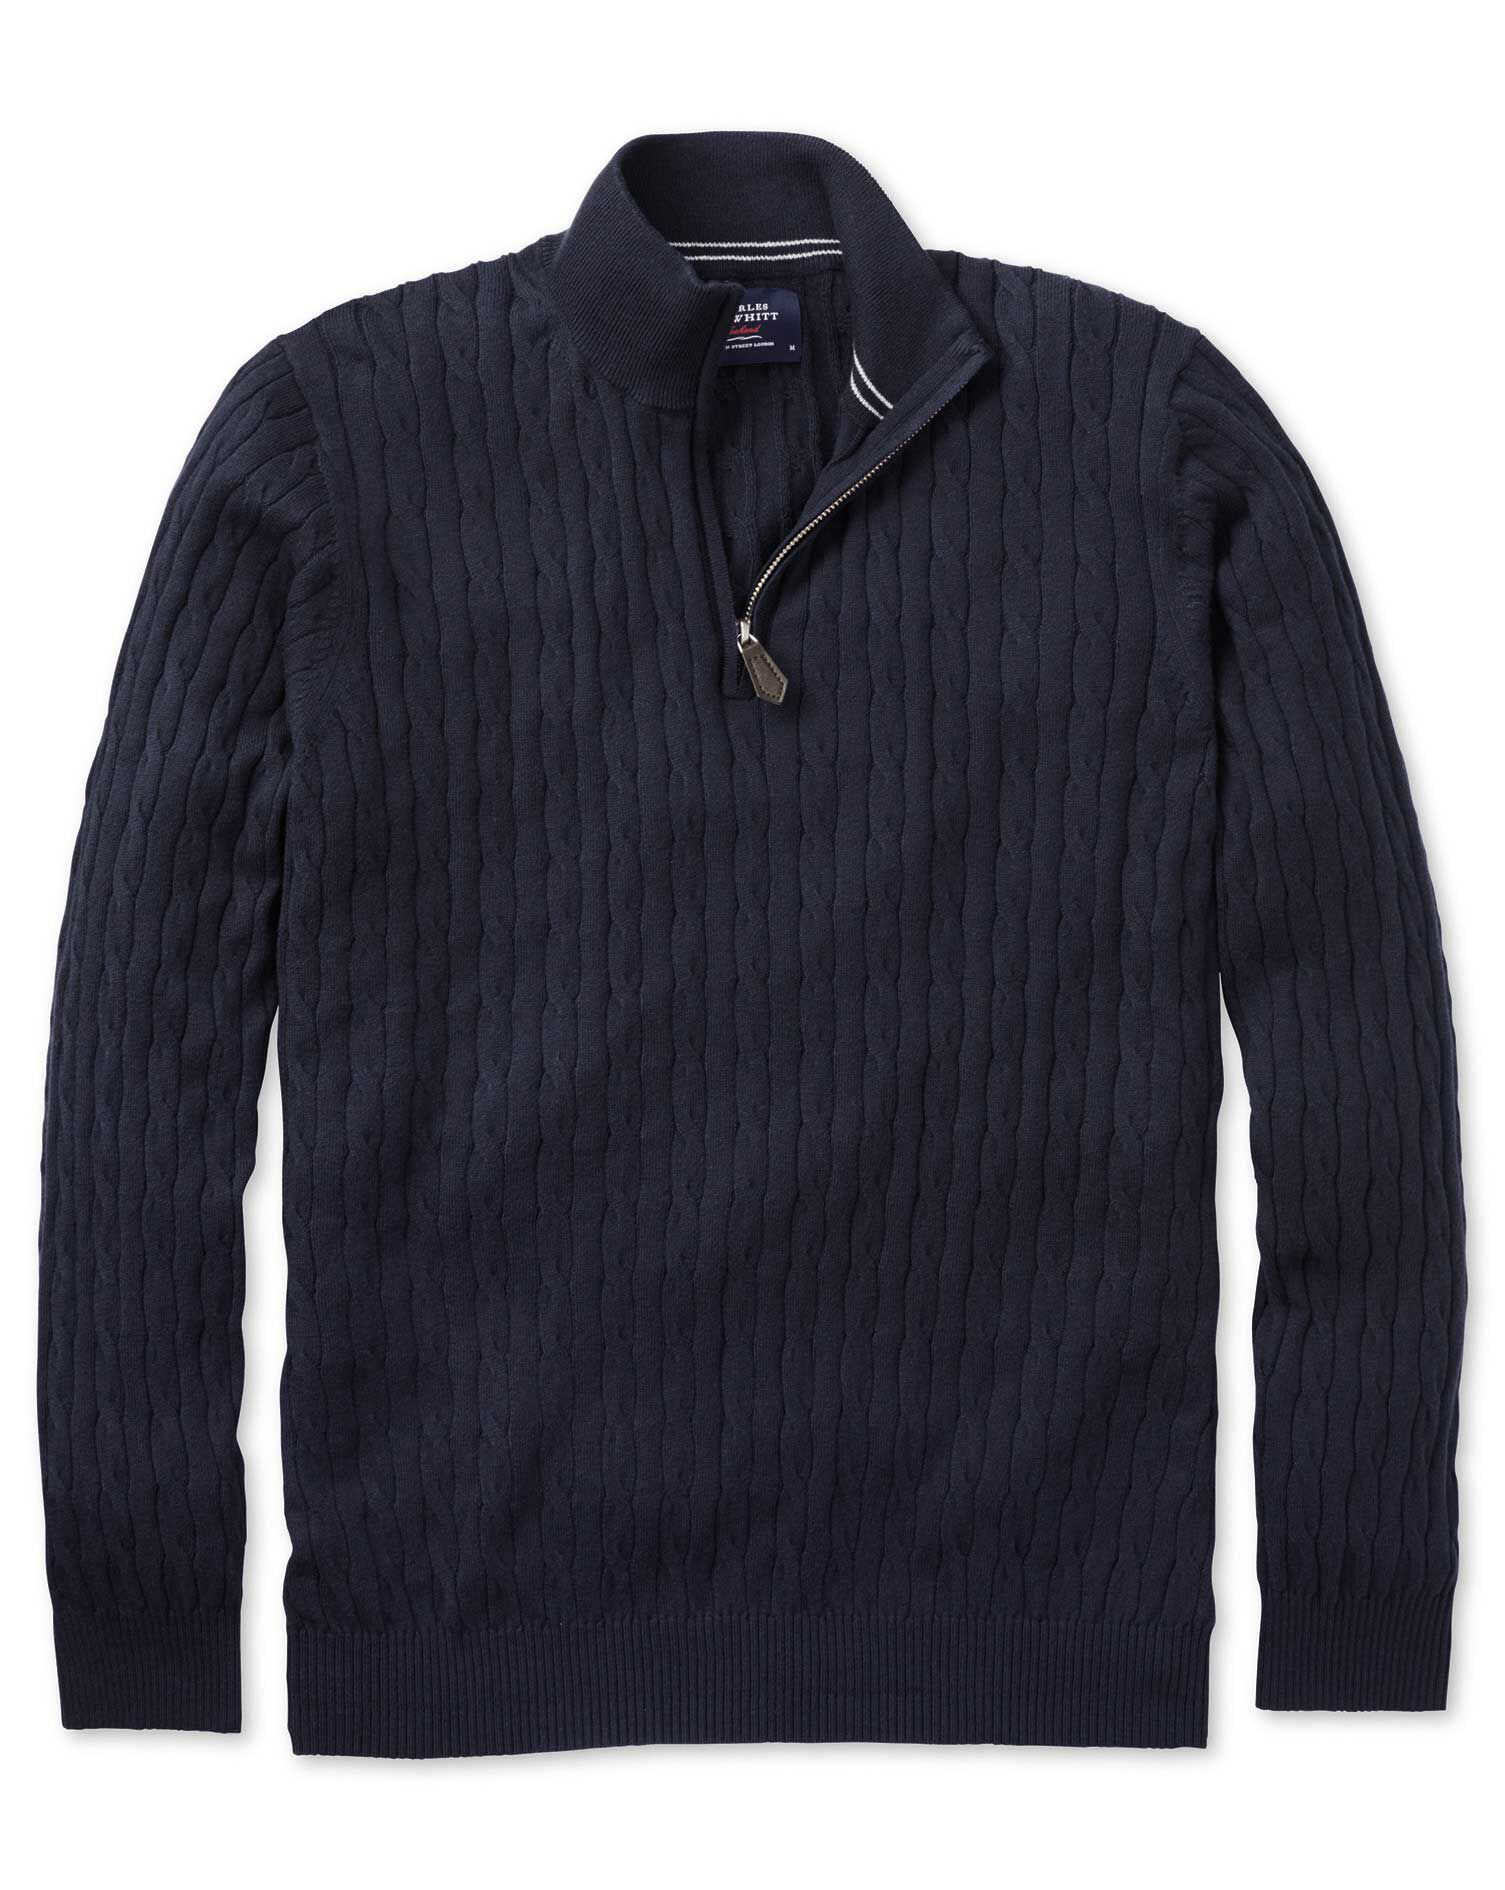 Navy Cotton Cashmere Cable Zip Neck Jumper Size XXL by Charles Tyrwhitt